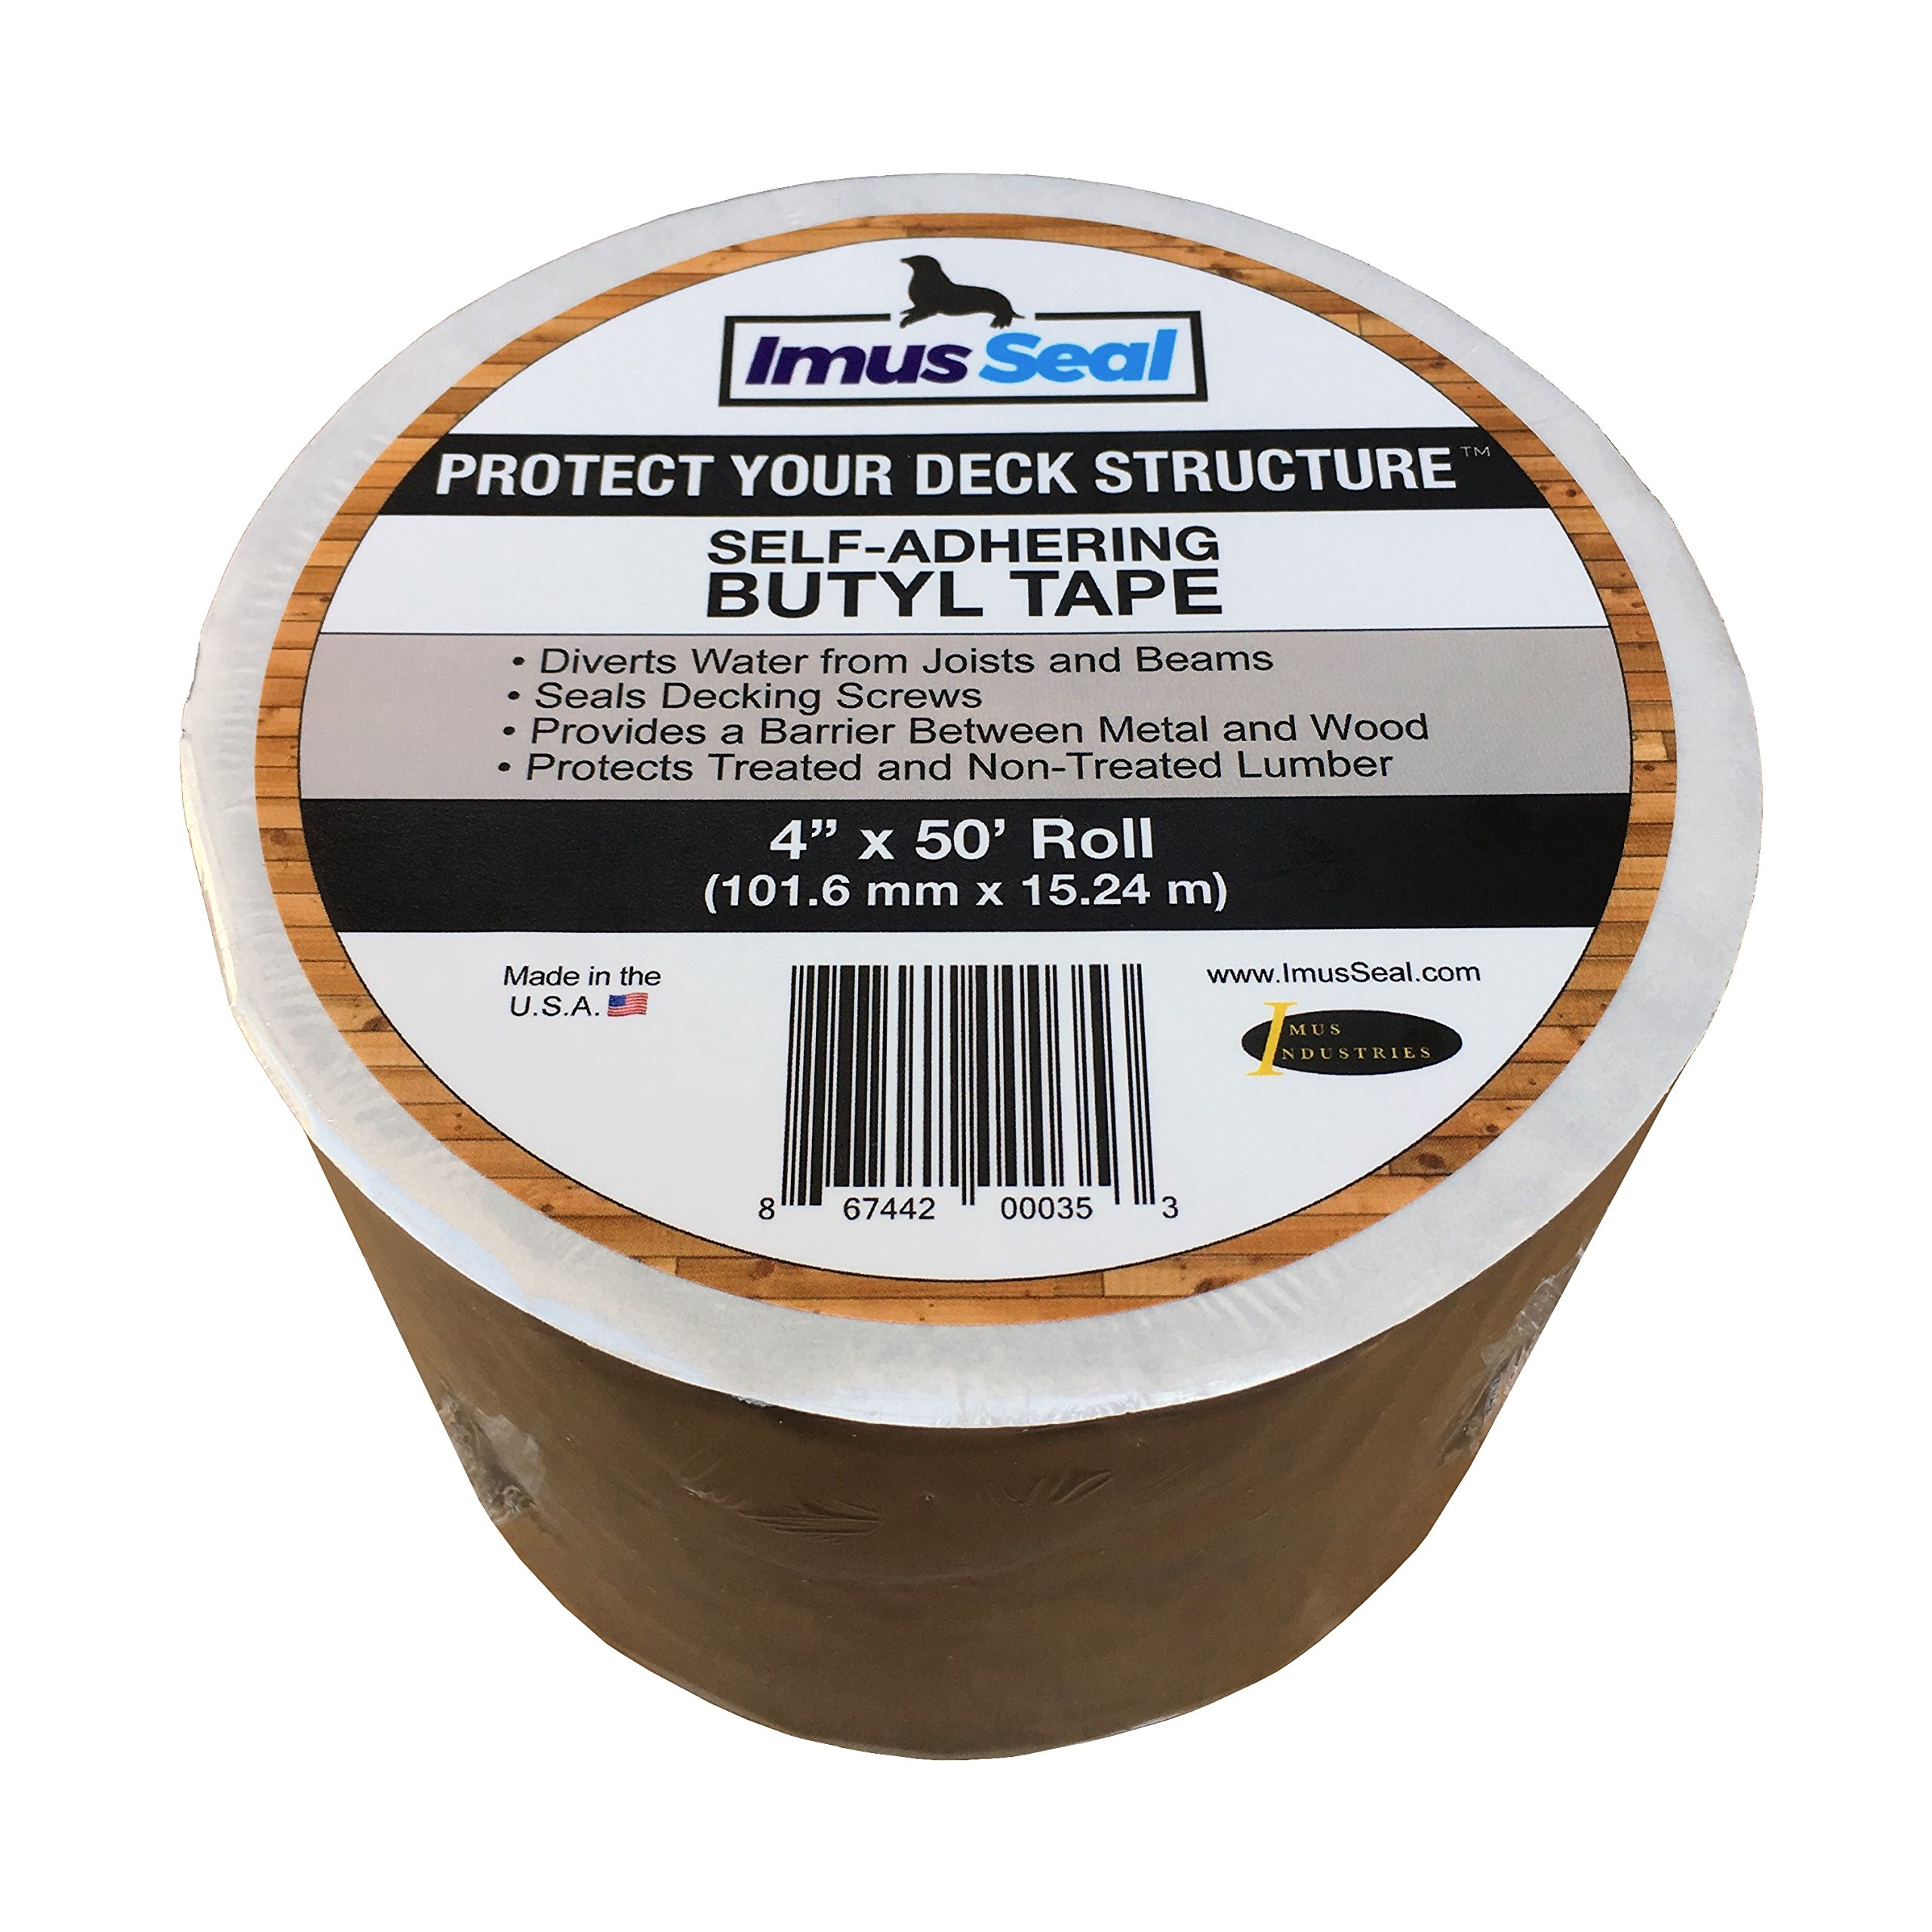 Imus Seal Butyl Tape for Flashing Deck Joists and Beams (4'' x 50' Roll) by Imus Industries, Inc.